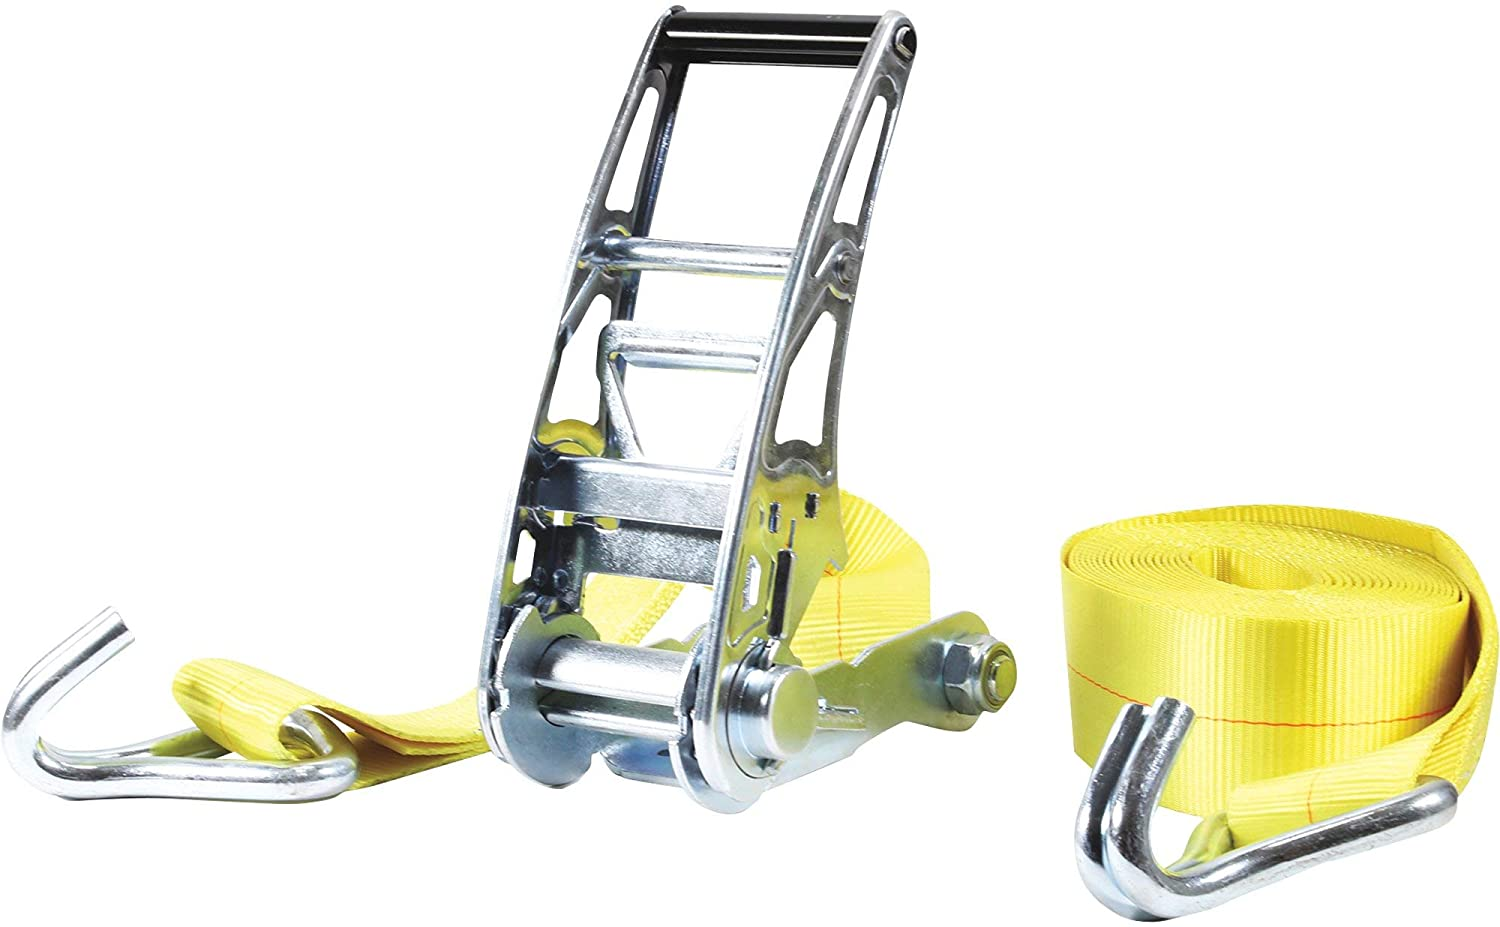 SmartStraps Commercial-Grade Stamped Ratchet Tie-Down Strap - 3in. x 27ft. with J-Hook, 15,000-Lb. Breaking Strength, Yellow, Model Number 4517